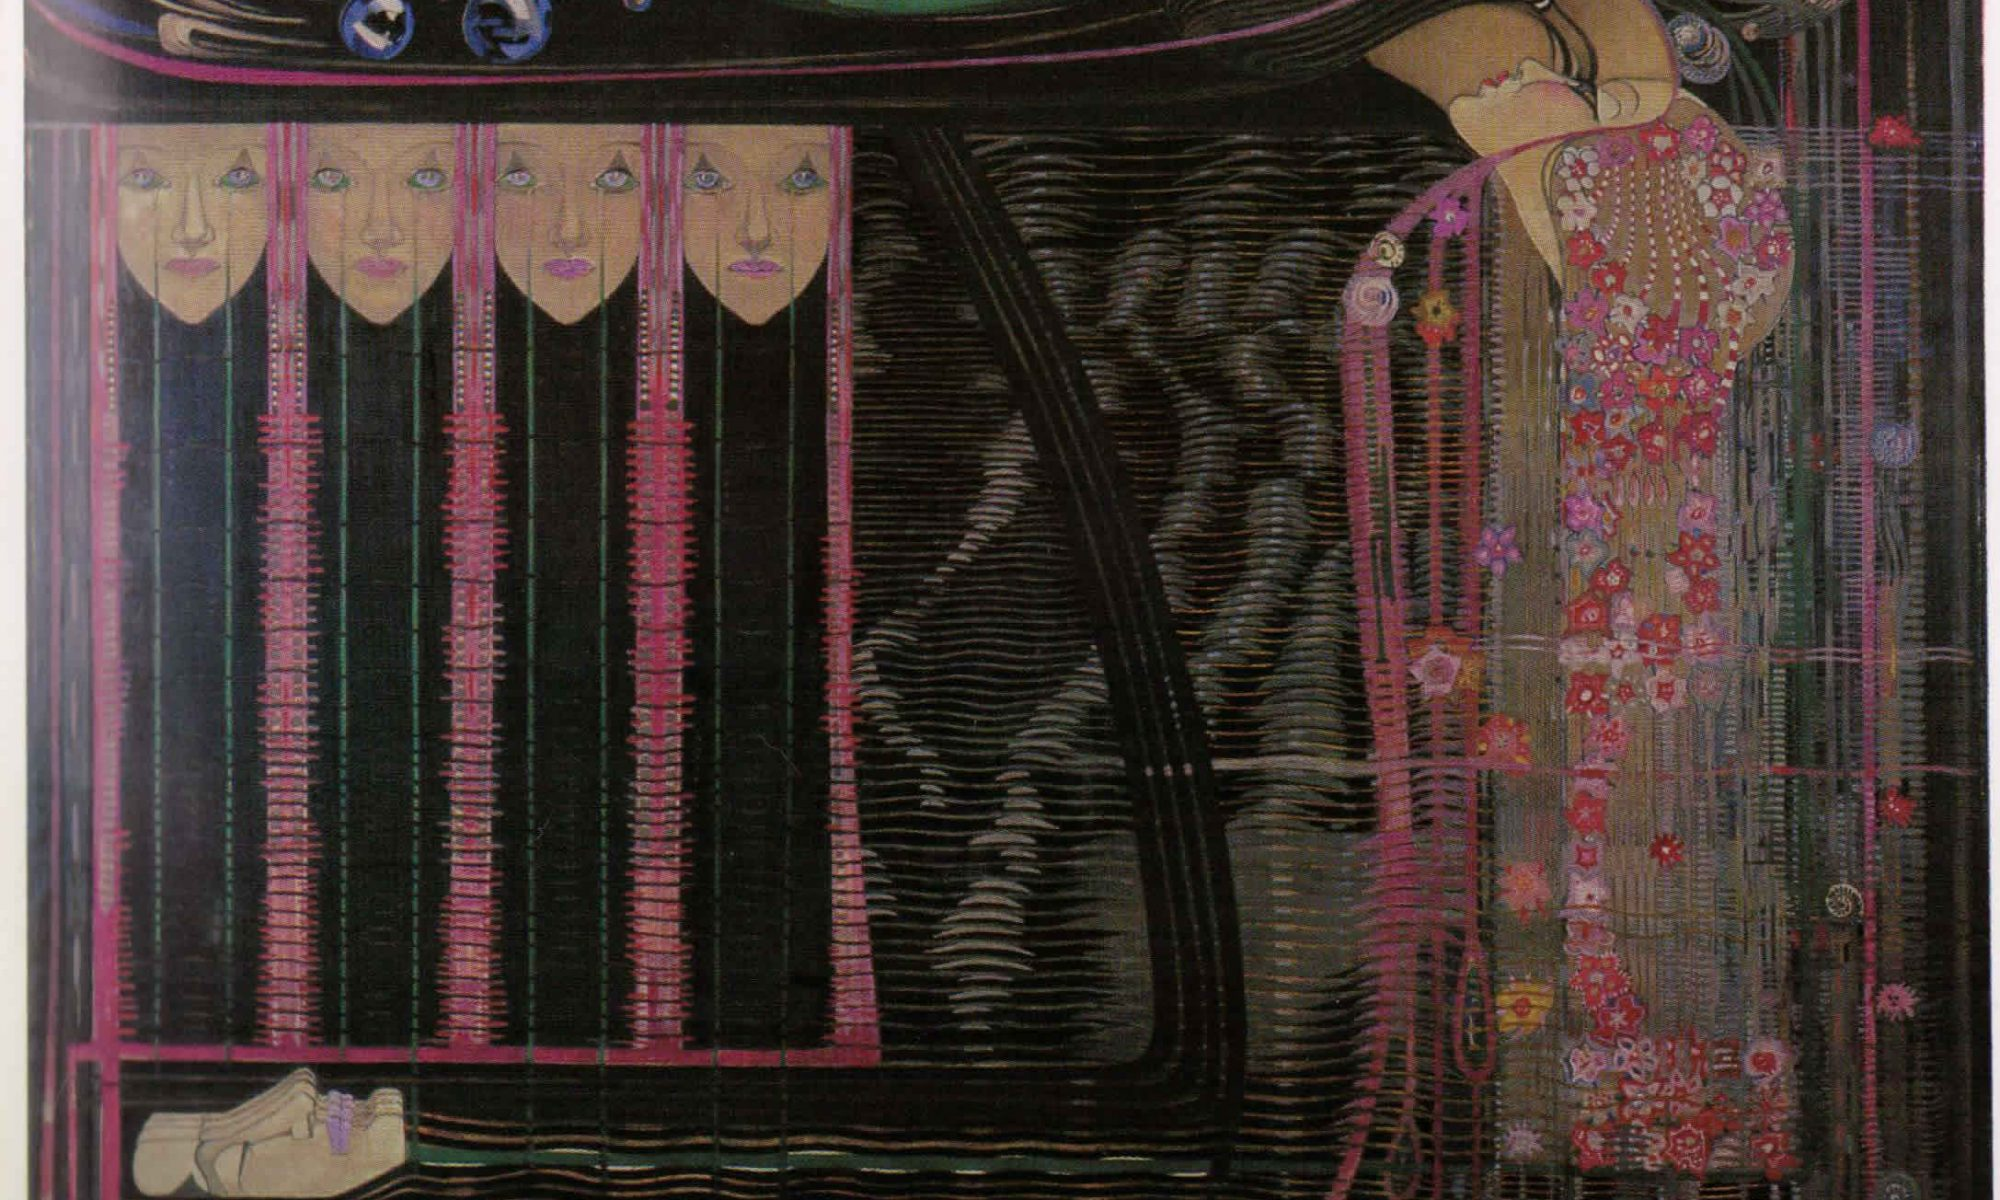 Opera of the Seas von Charles Rennie Mackintosh und Margaret Macdonald